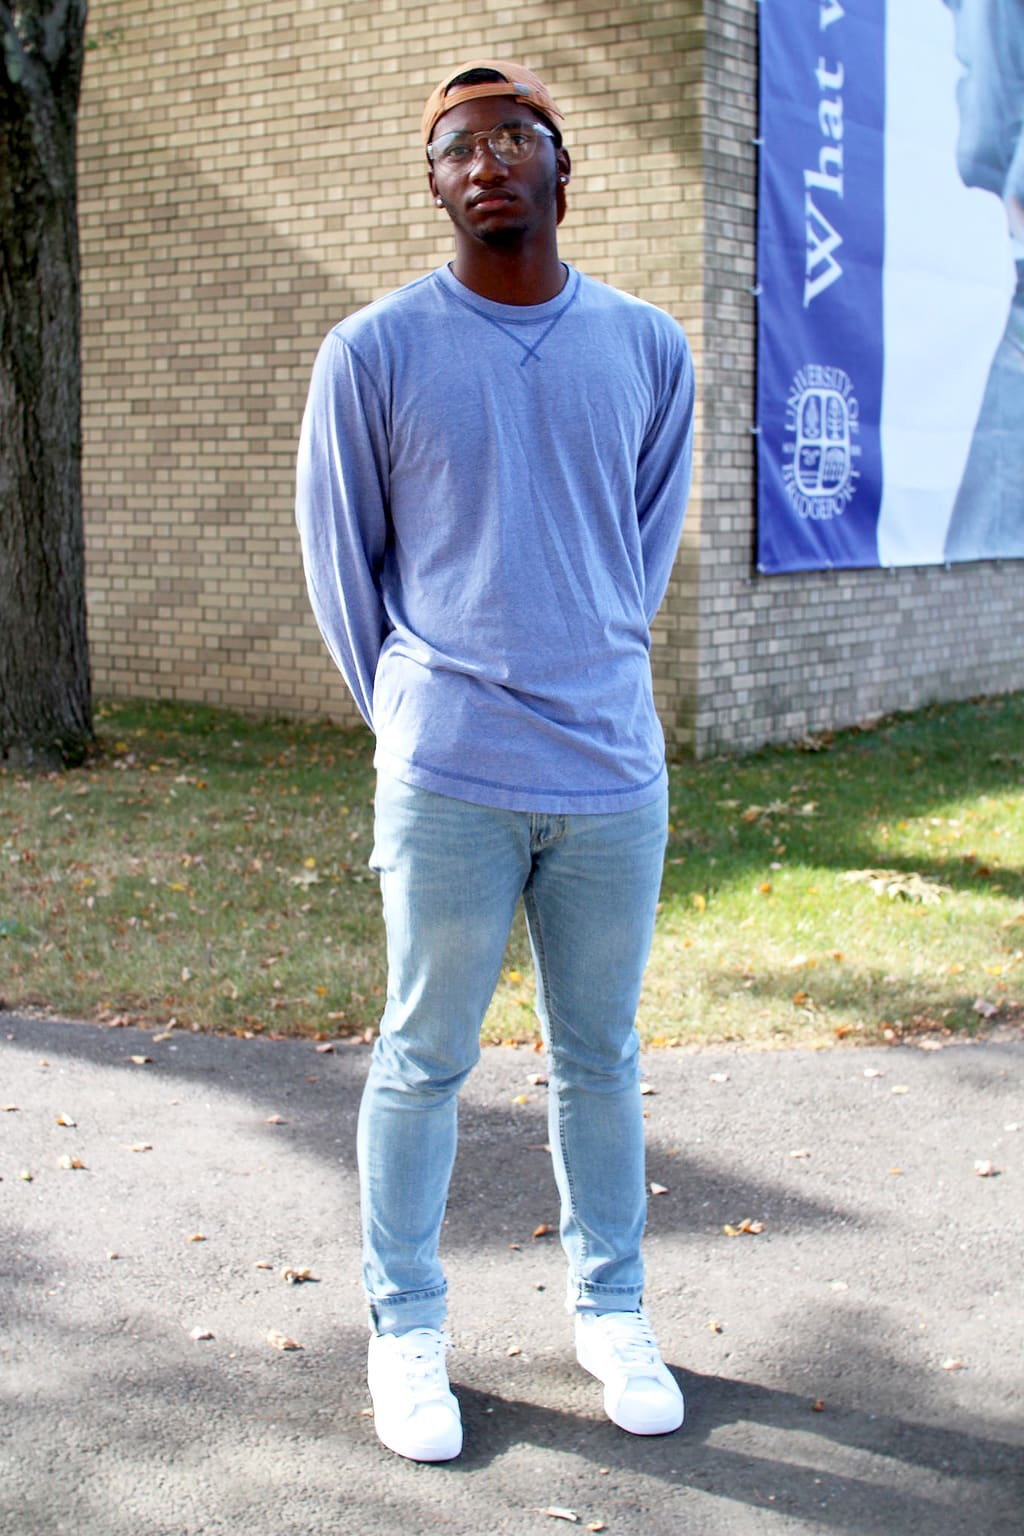 Guy S College Fashion At University Of Bridgeport